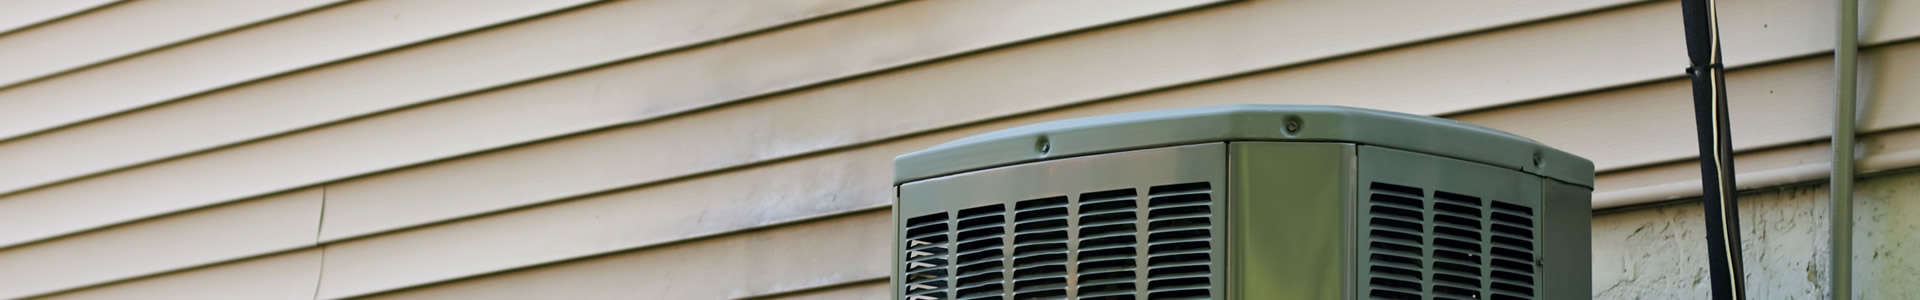 Best Air Conditioner 2020 Will Your Air Conditioning System Need to be Replaced by 2020